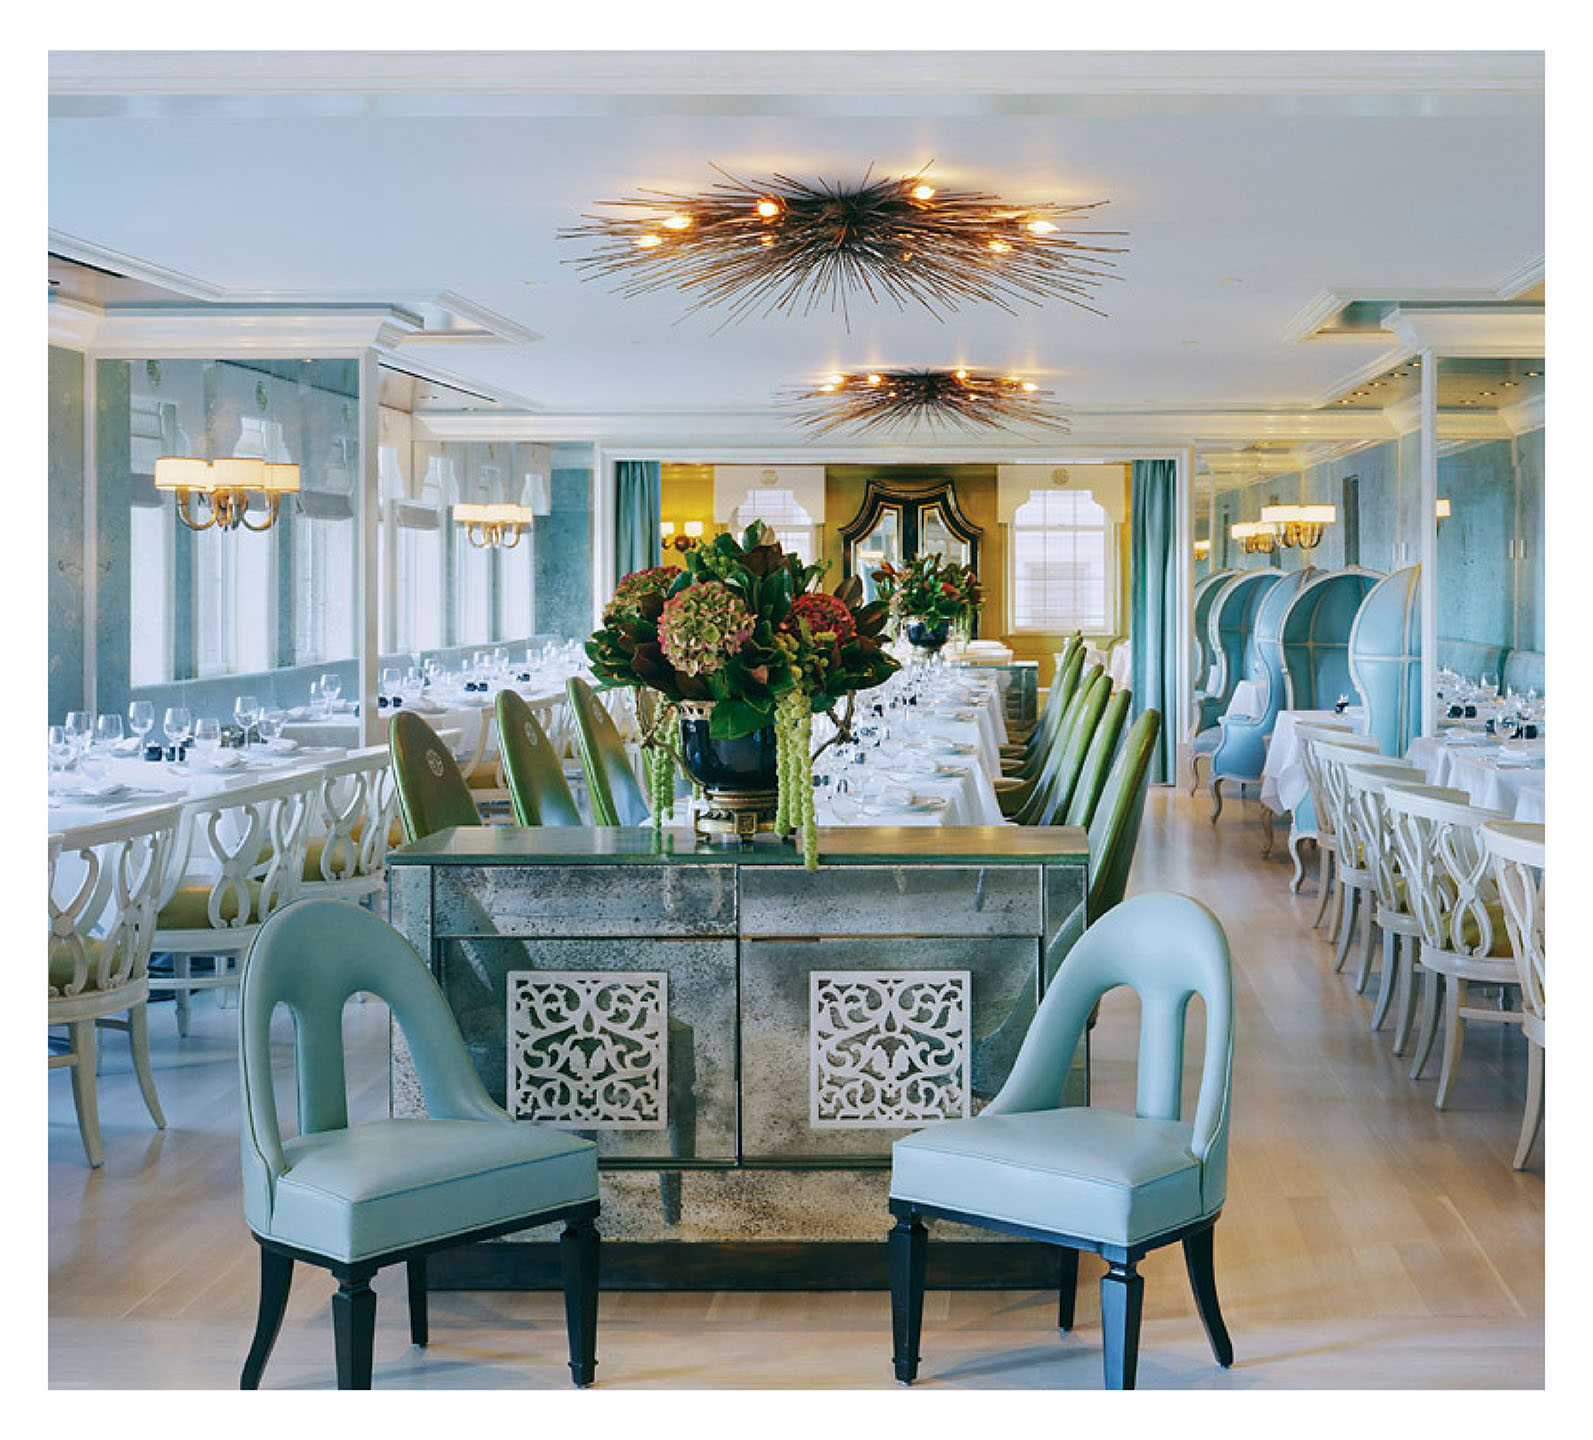 Top Interior Designers: Kelly Wearstler - blue interior design - dining room interiors - commercial interiors - cool color interior design - robins egg blue chairs